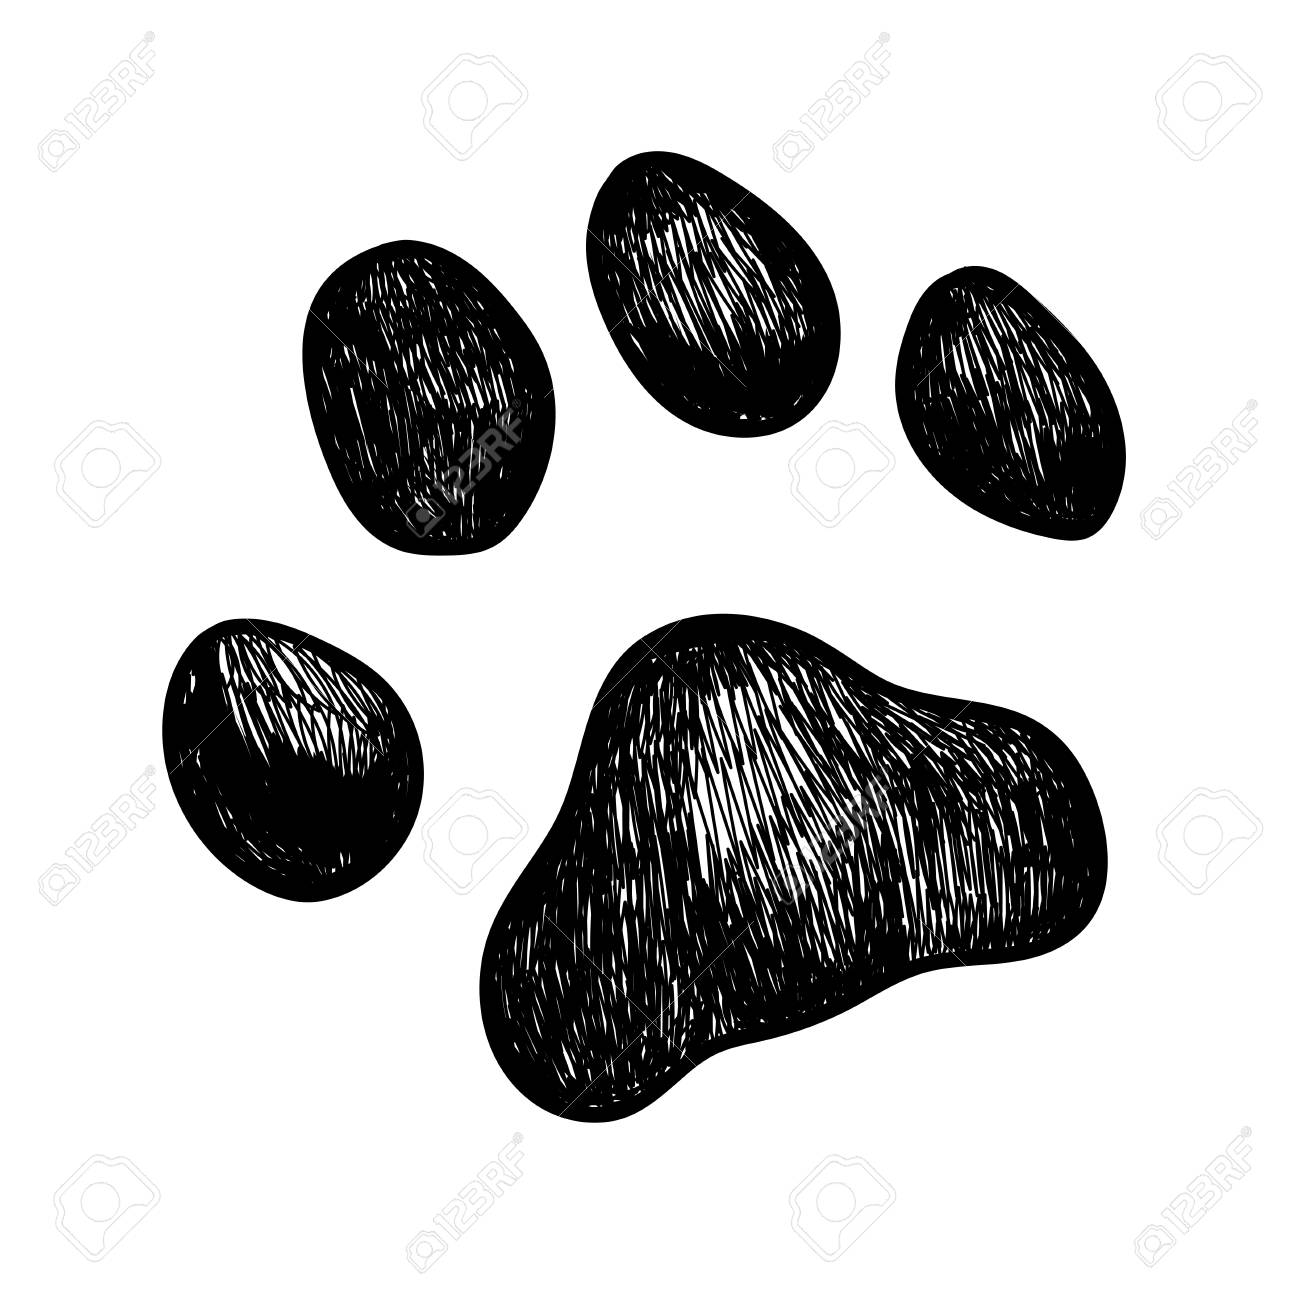 Vector Illustration Sketch Of A Dog Paw Print Royalty Free Cliparts